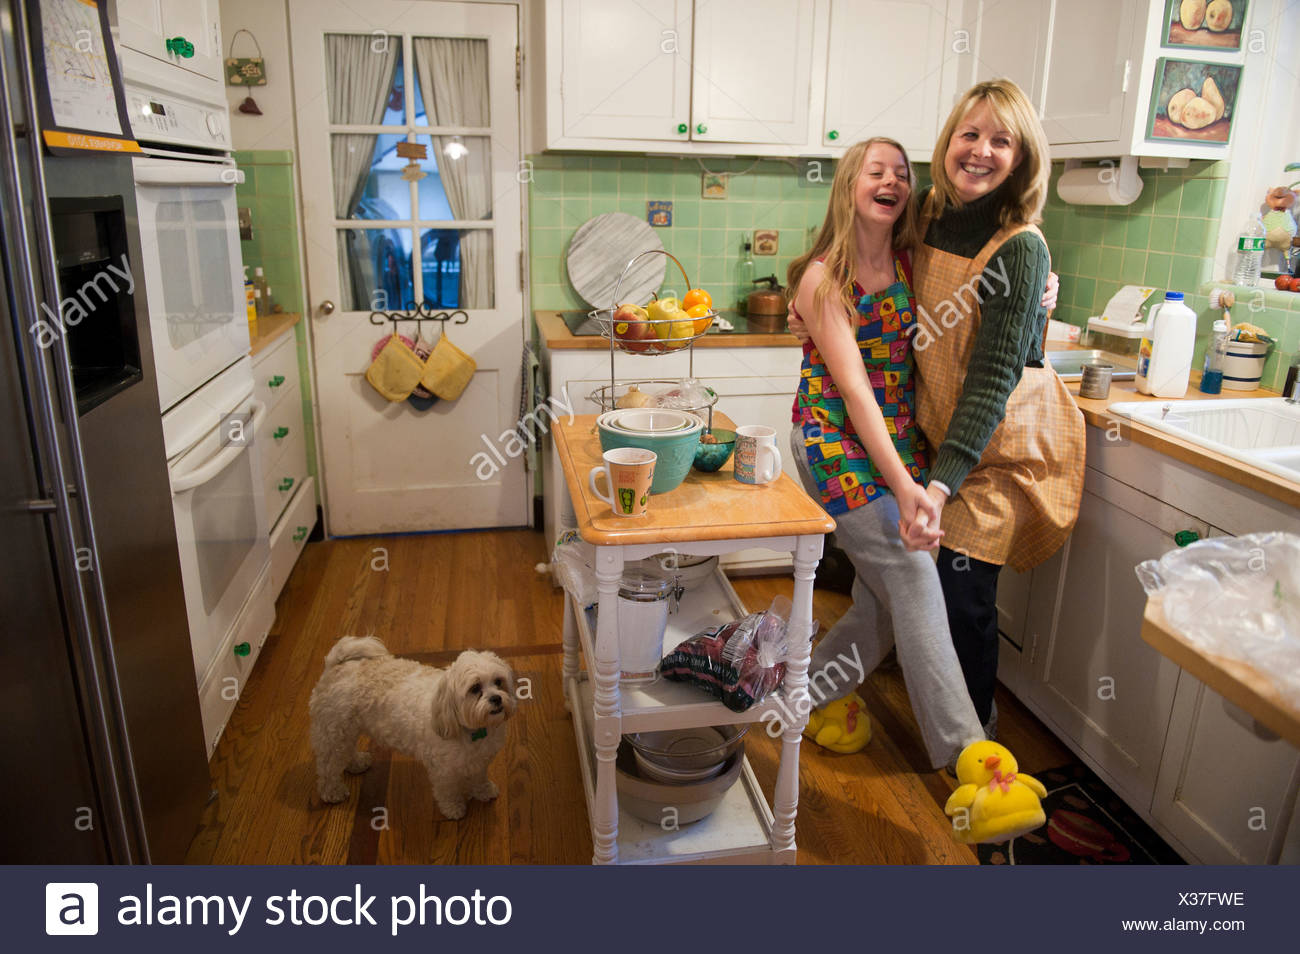 A mother and daughter playfully dance together in their kitchen